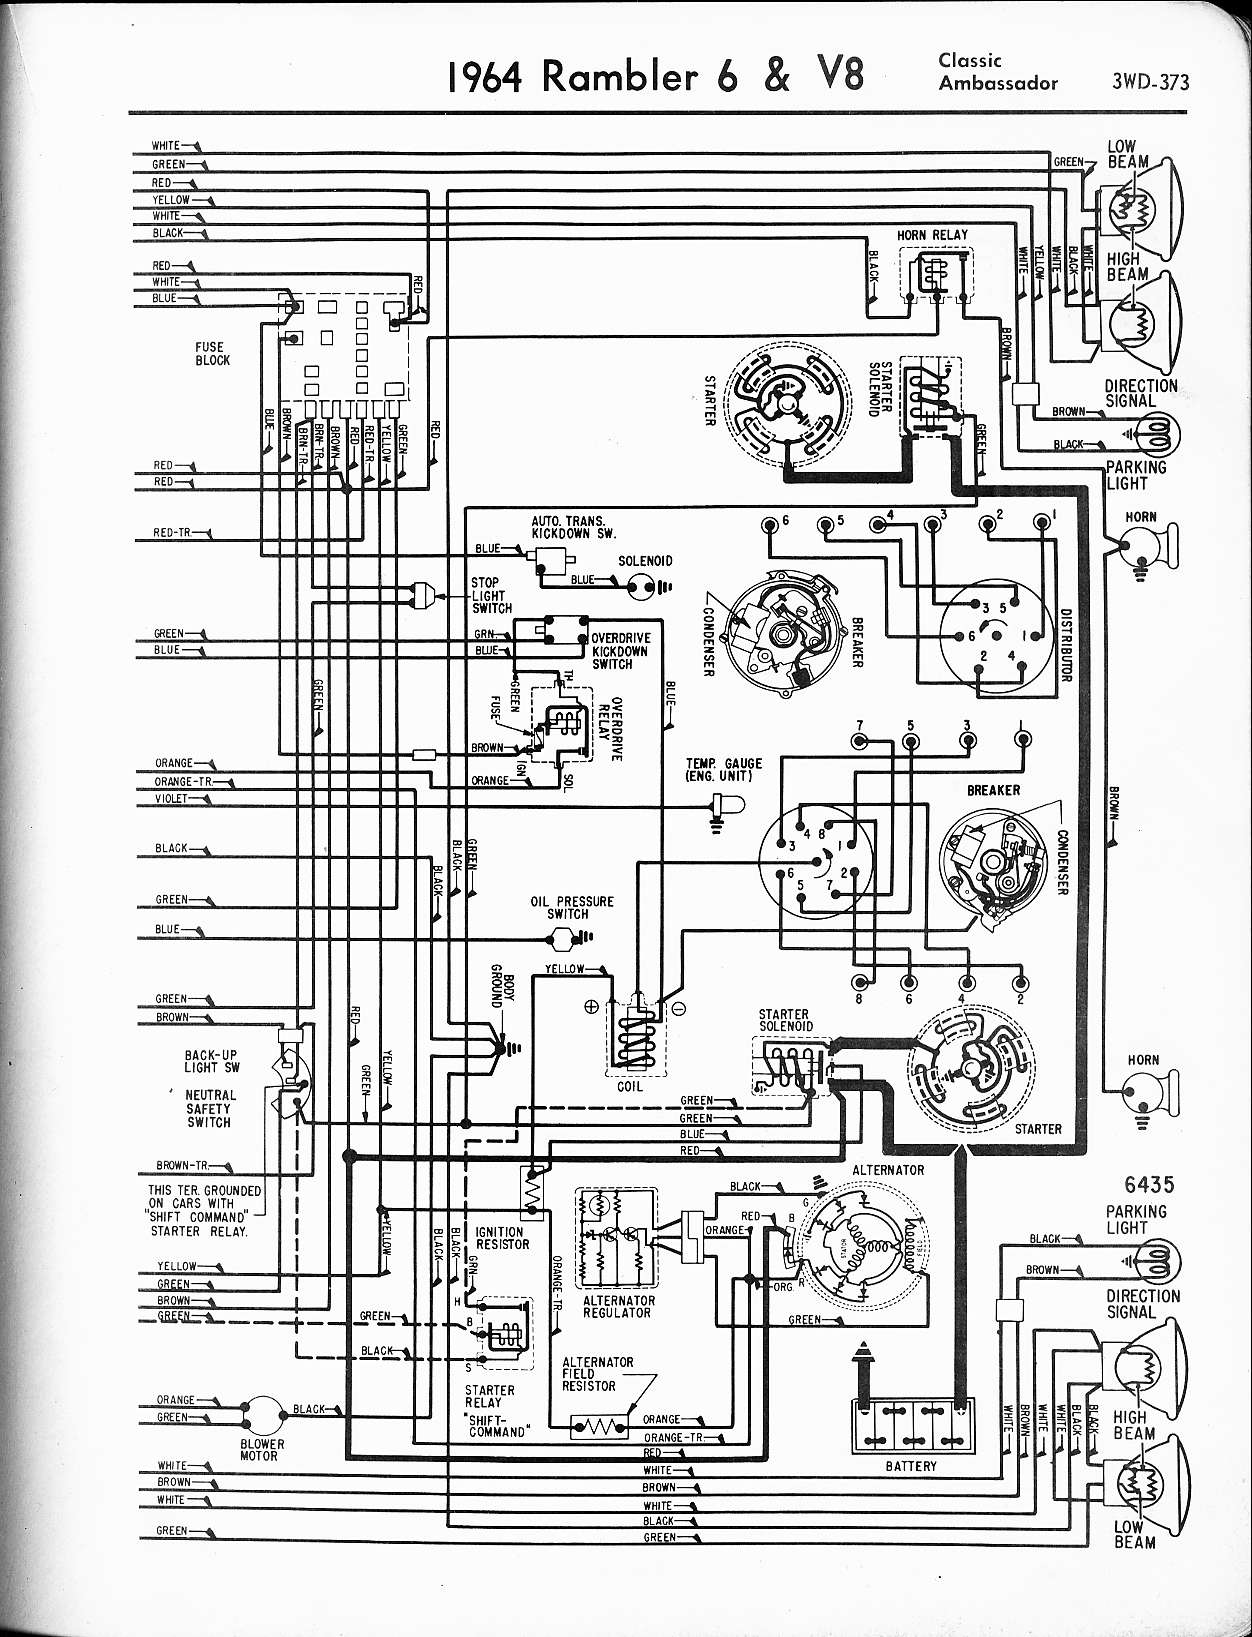 1960 Rambler American Wiring Diagrams Schematic 1967 Rebel Diagram 64 Residential Electrical Symbols U2022 Classic Station Wagon